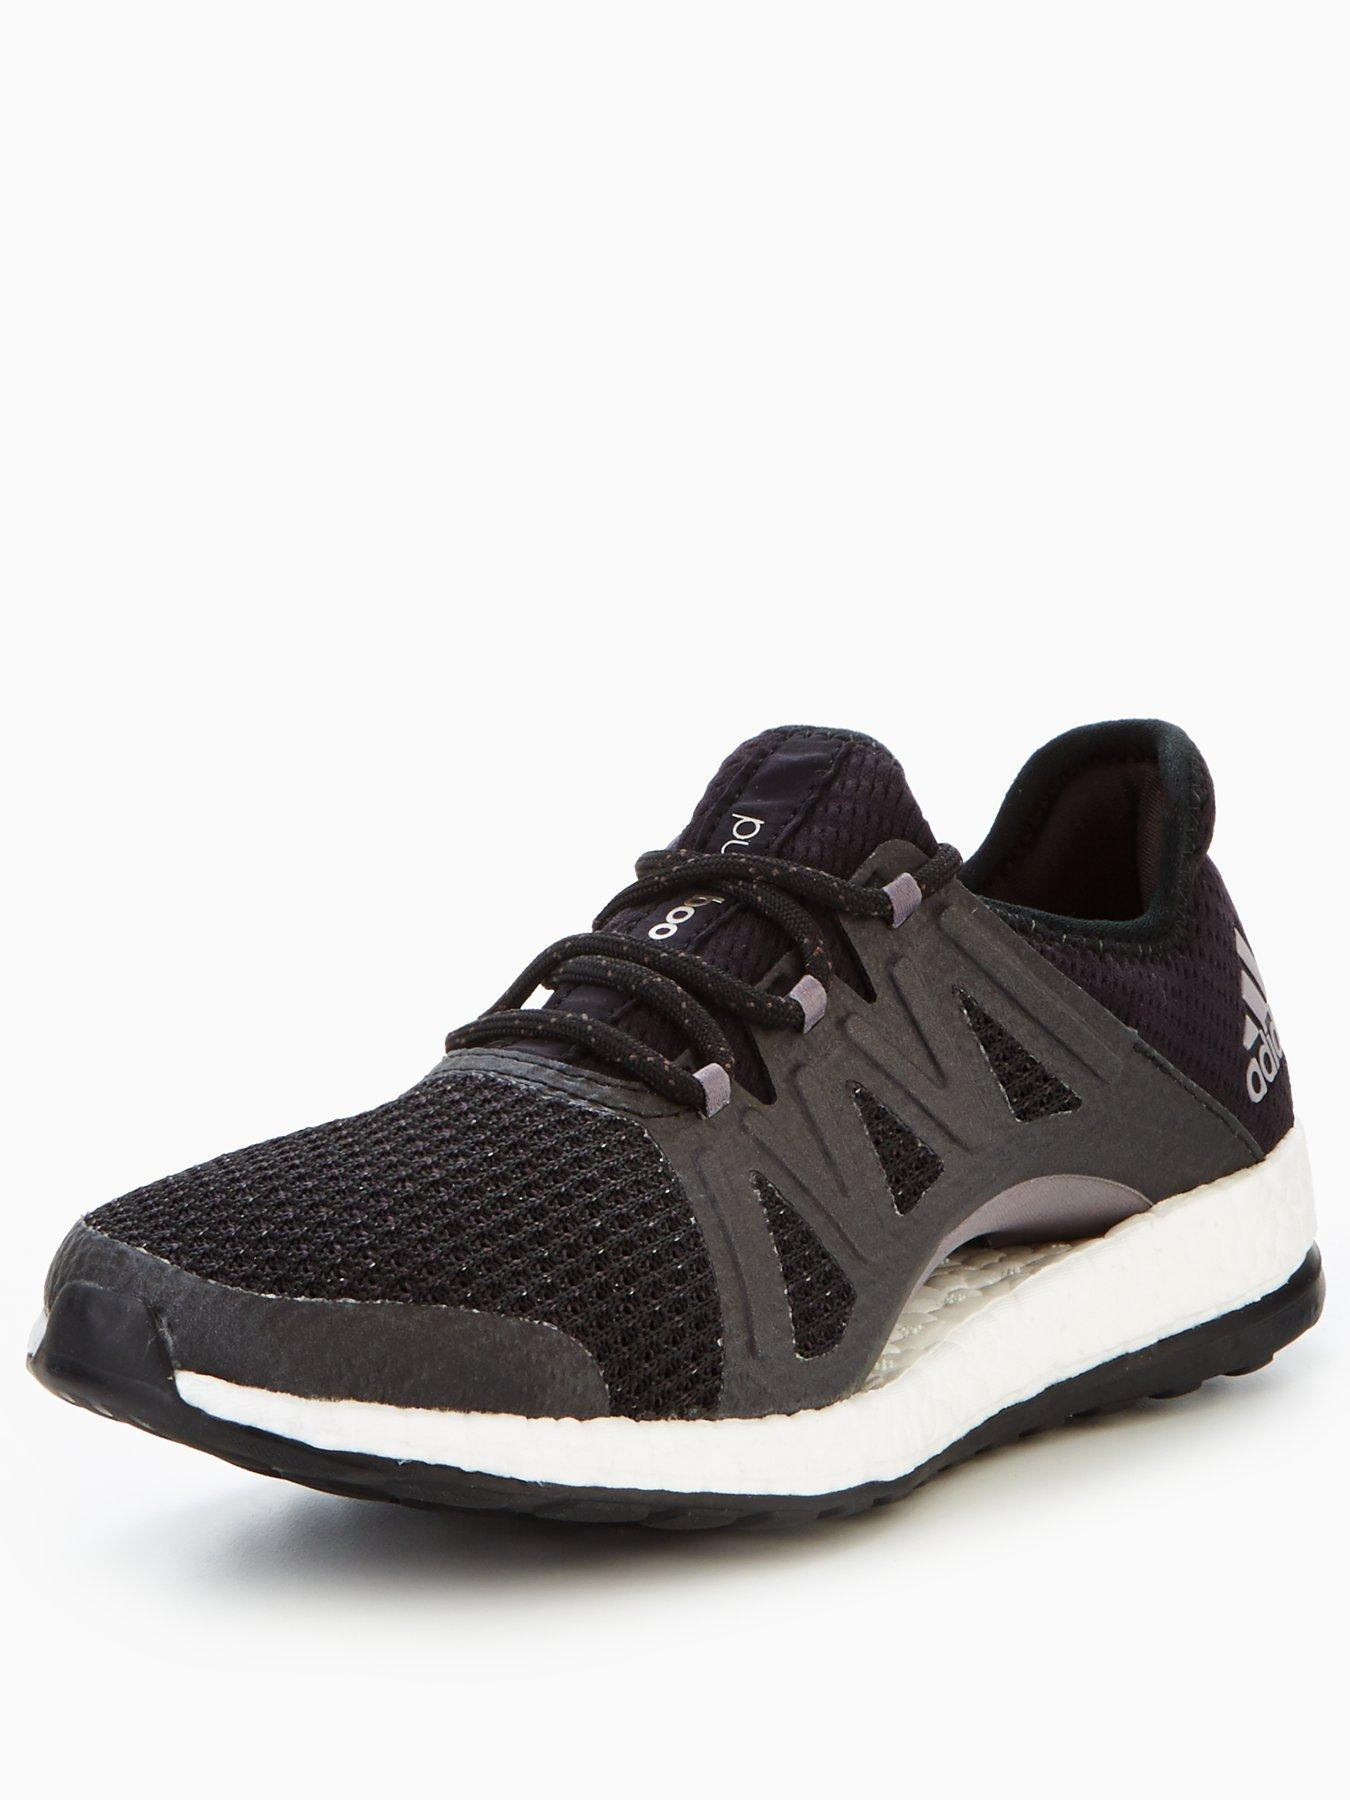 adidas womens pumps